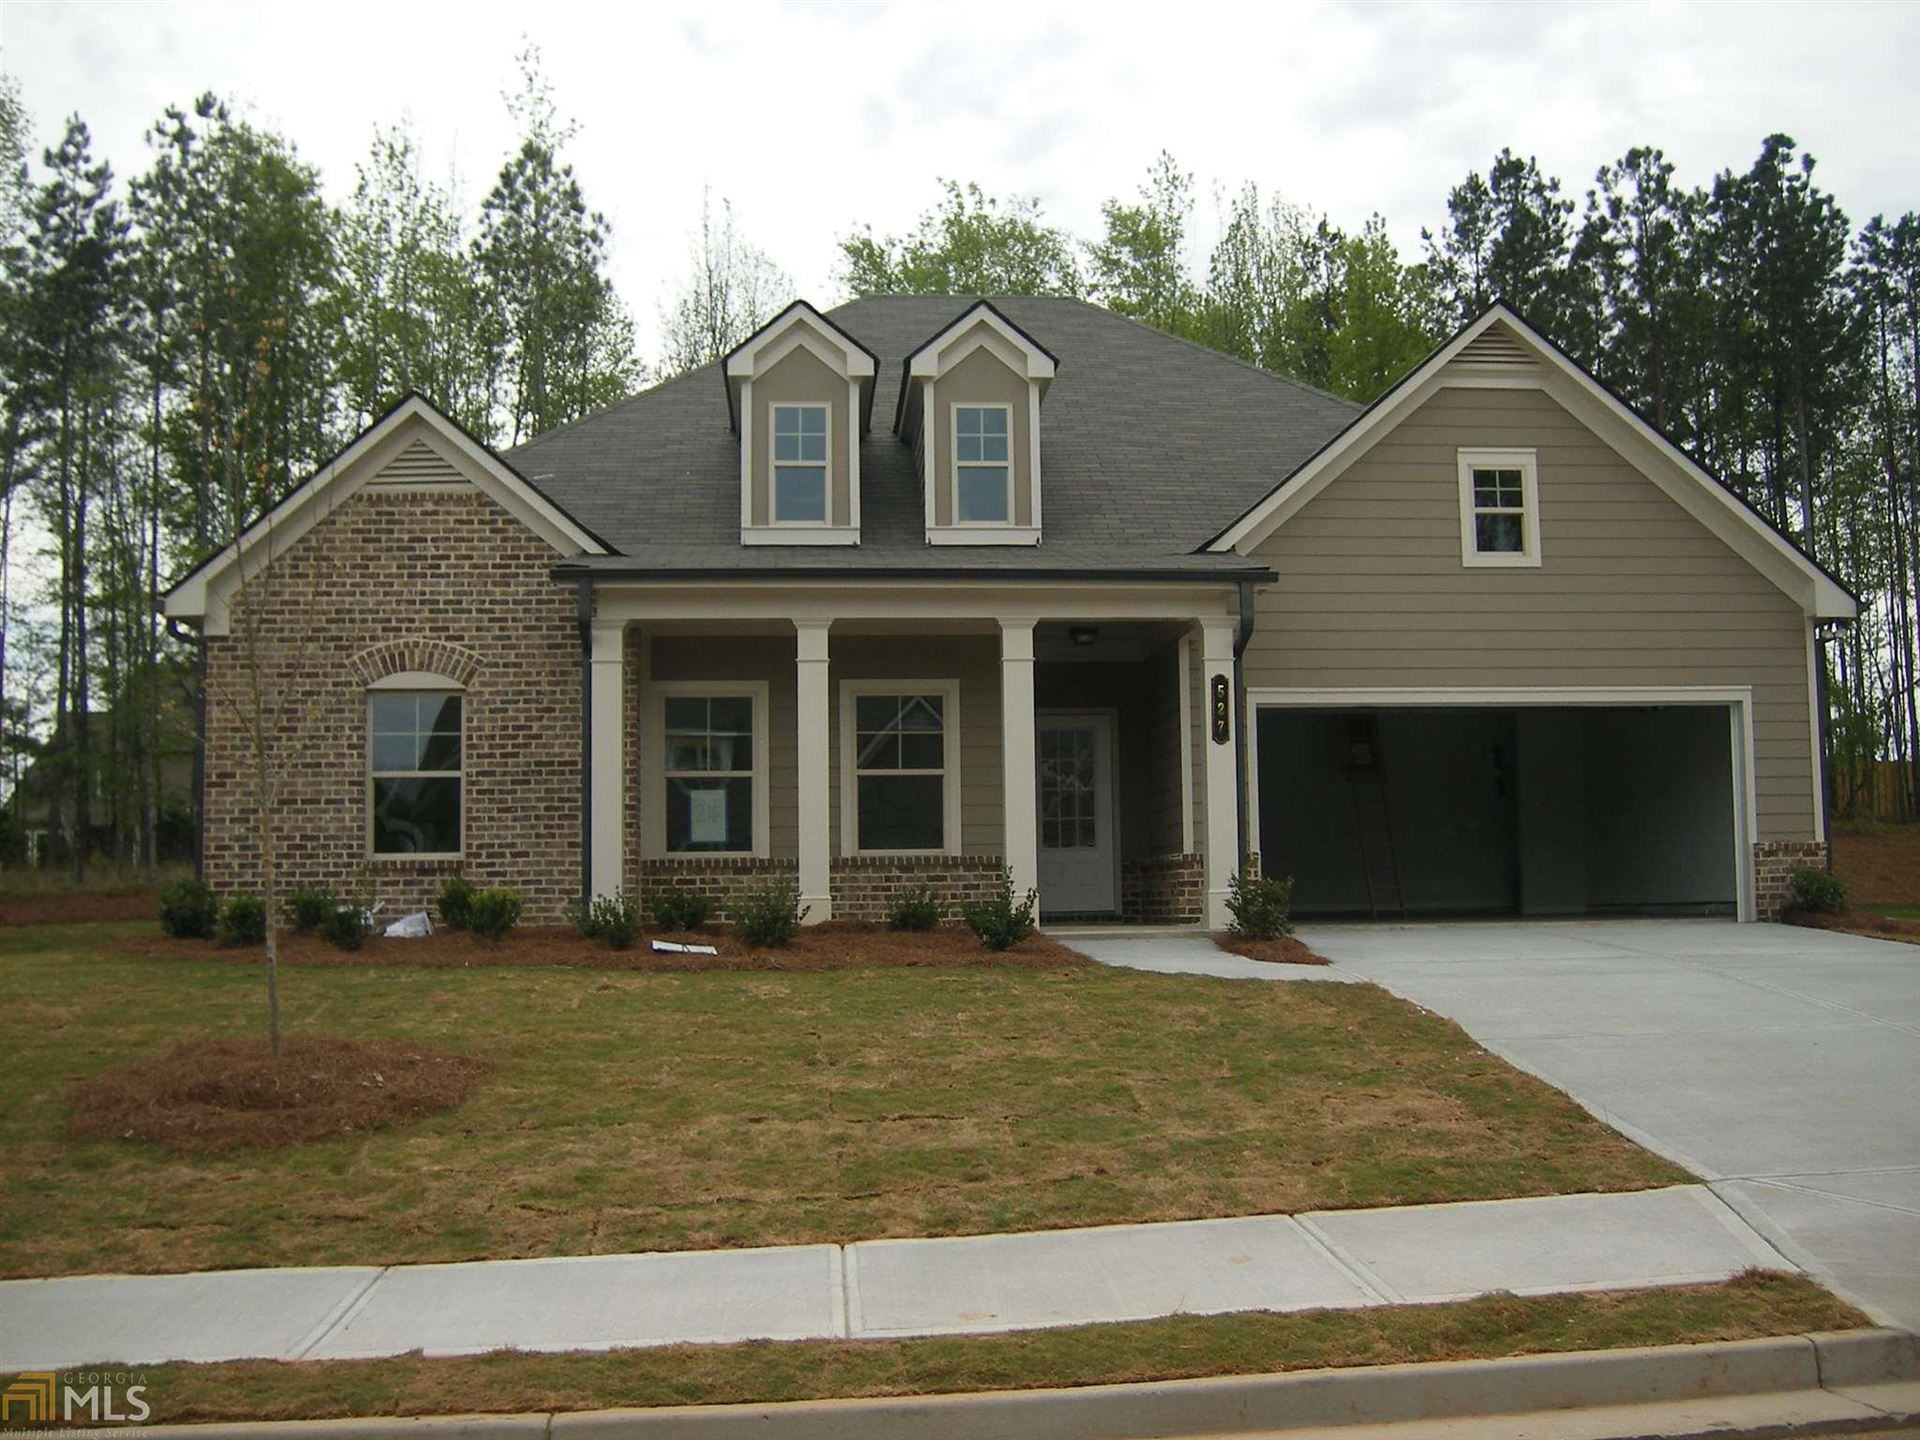 527 Gadwall Cir, Jefferson, GA 30549 - #: 8708432